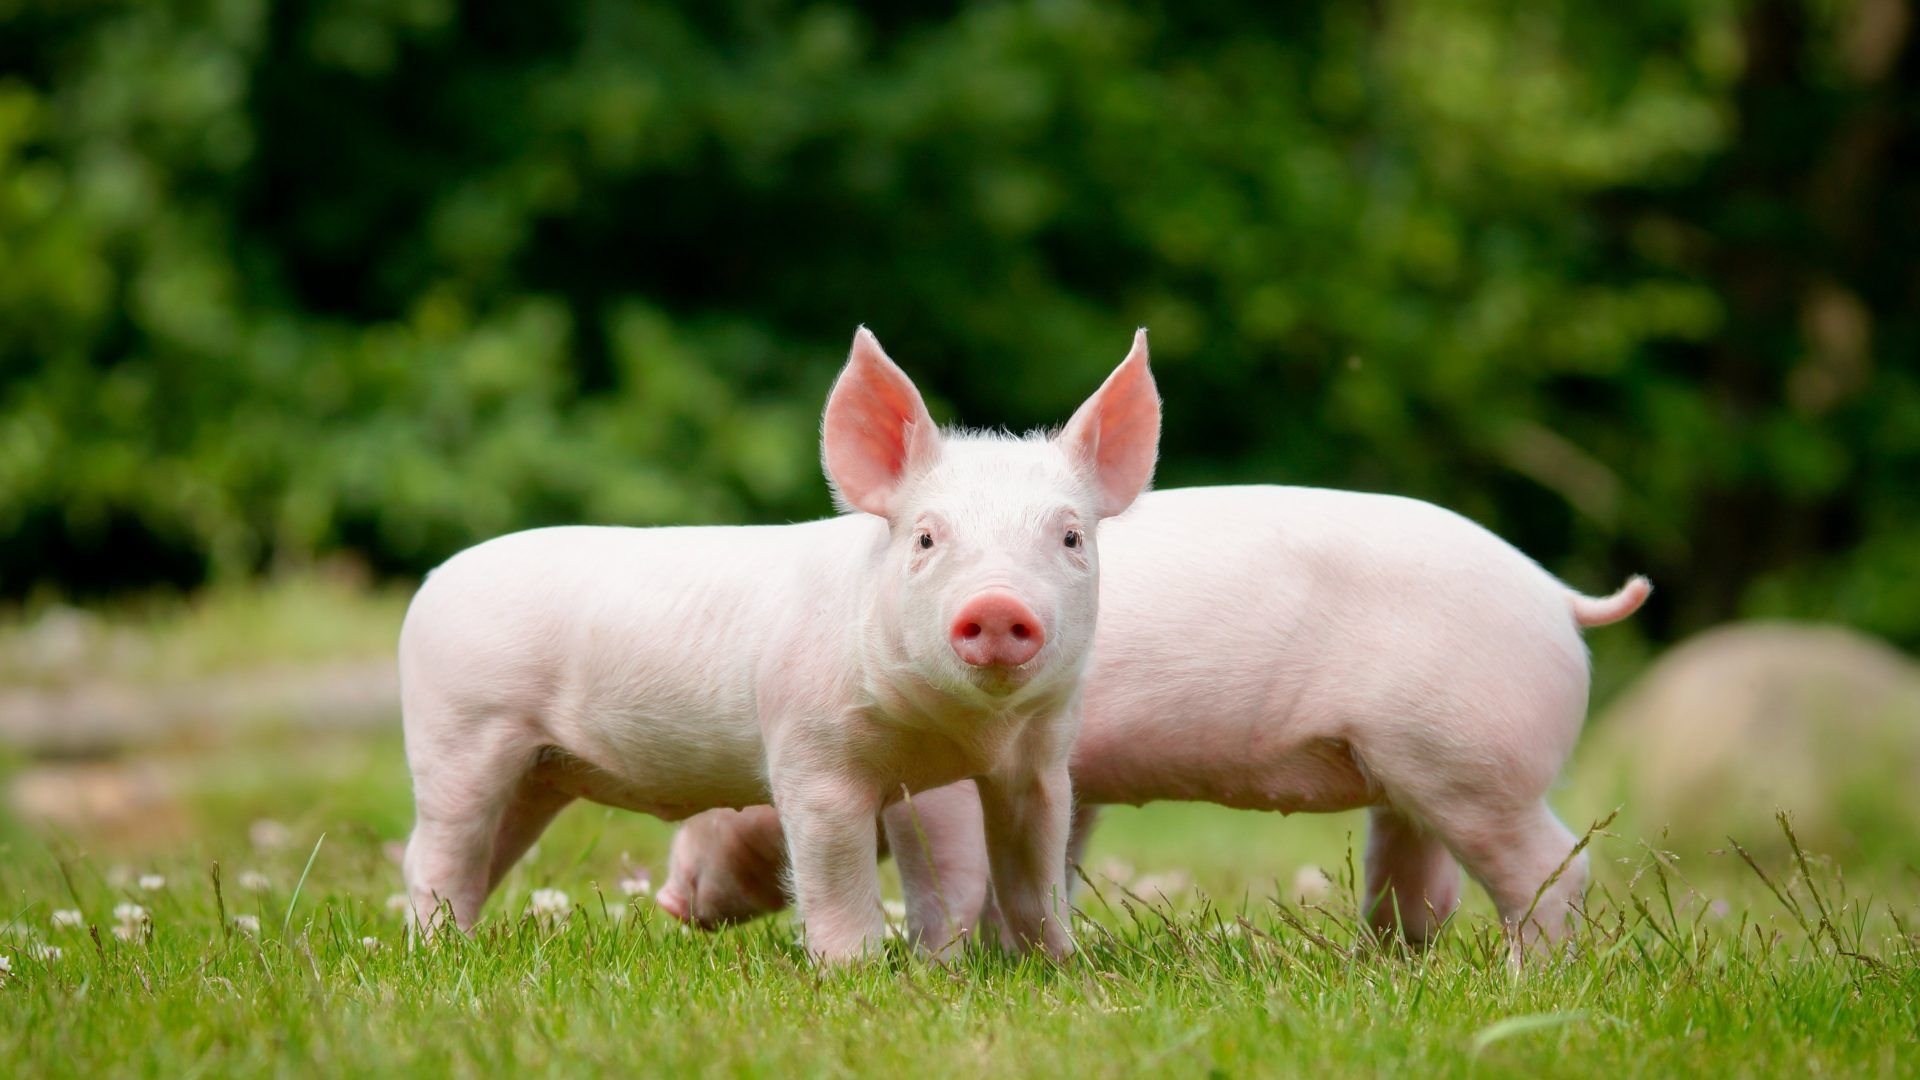 The Baby Pigs